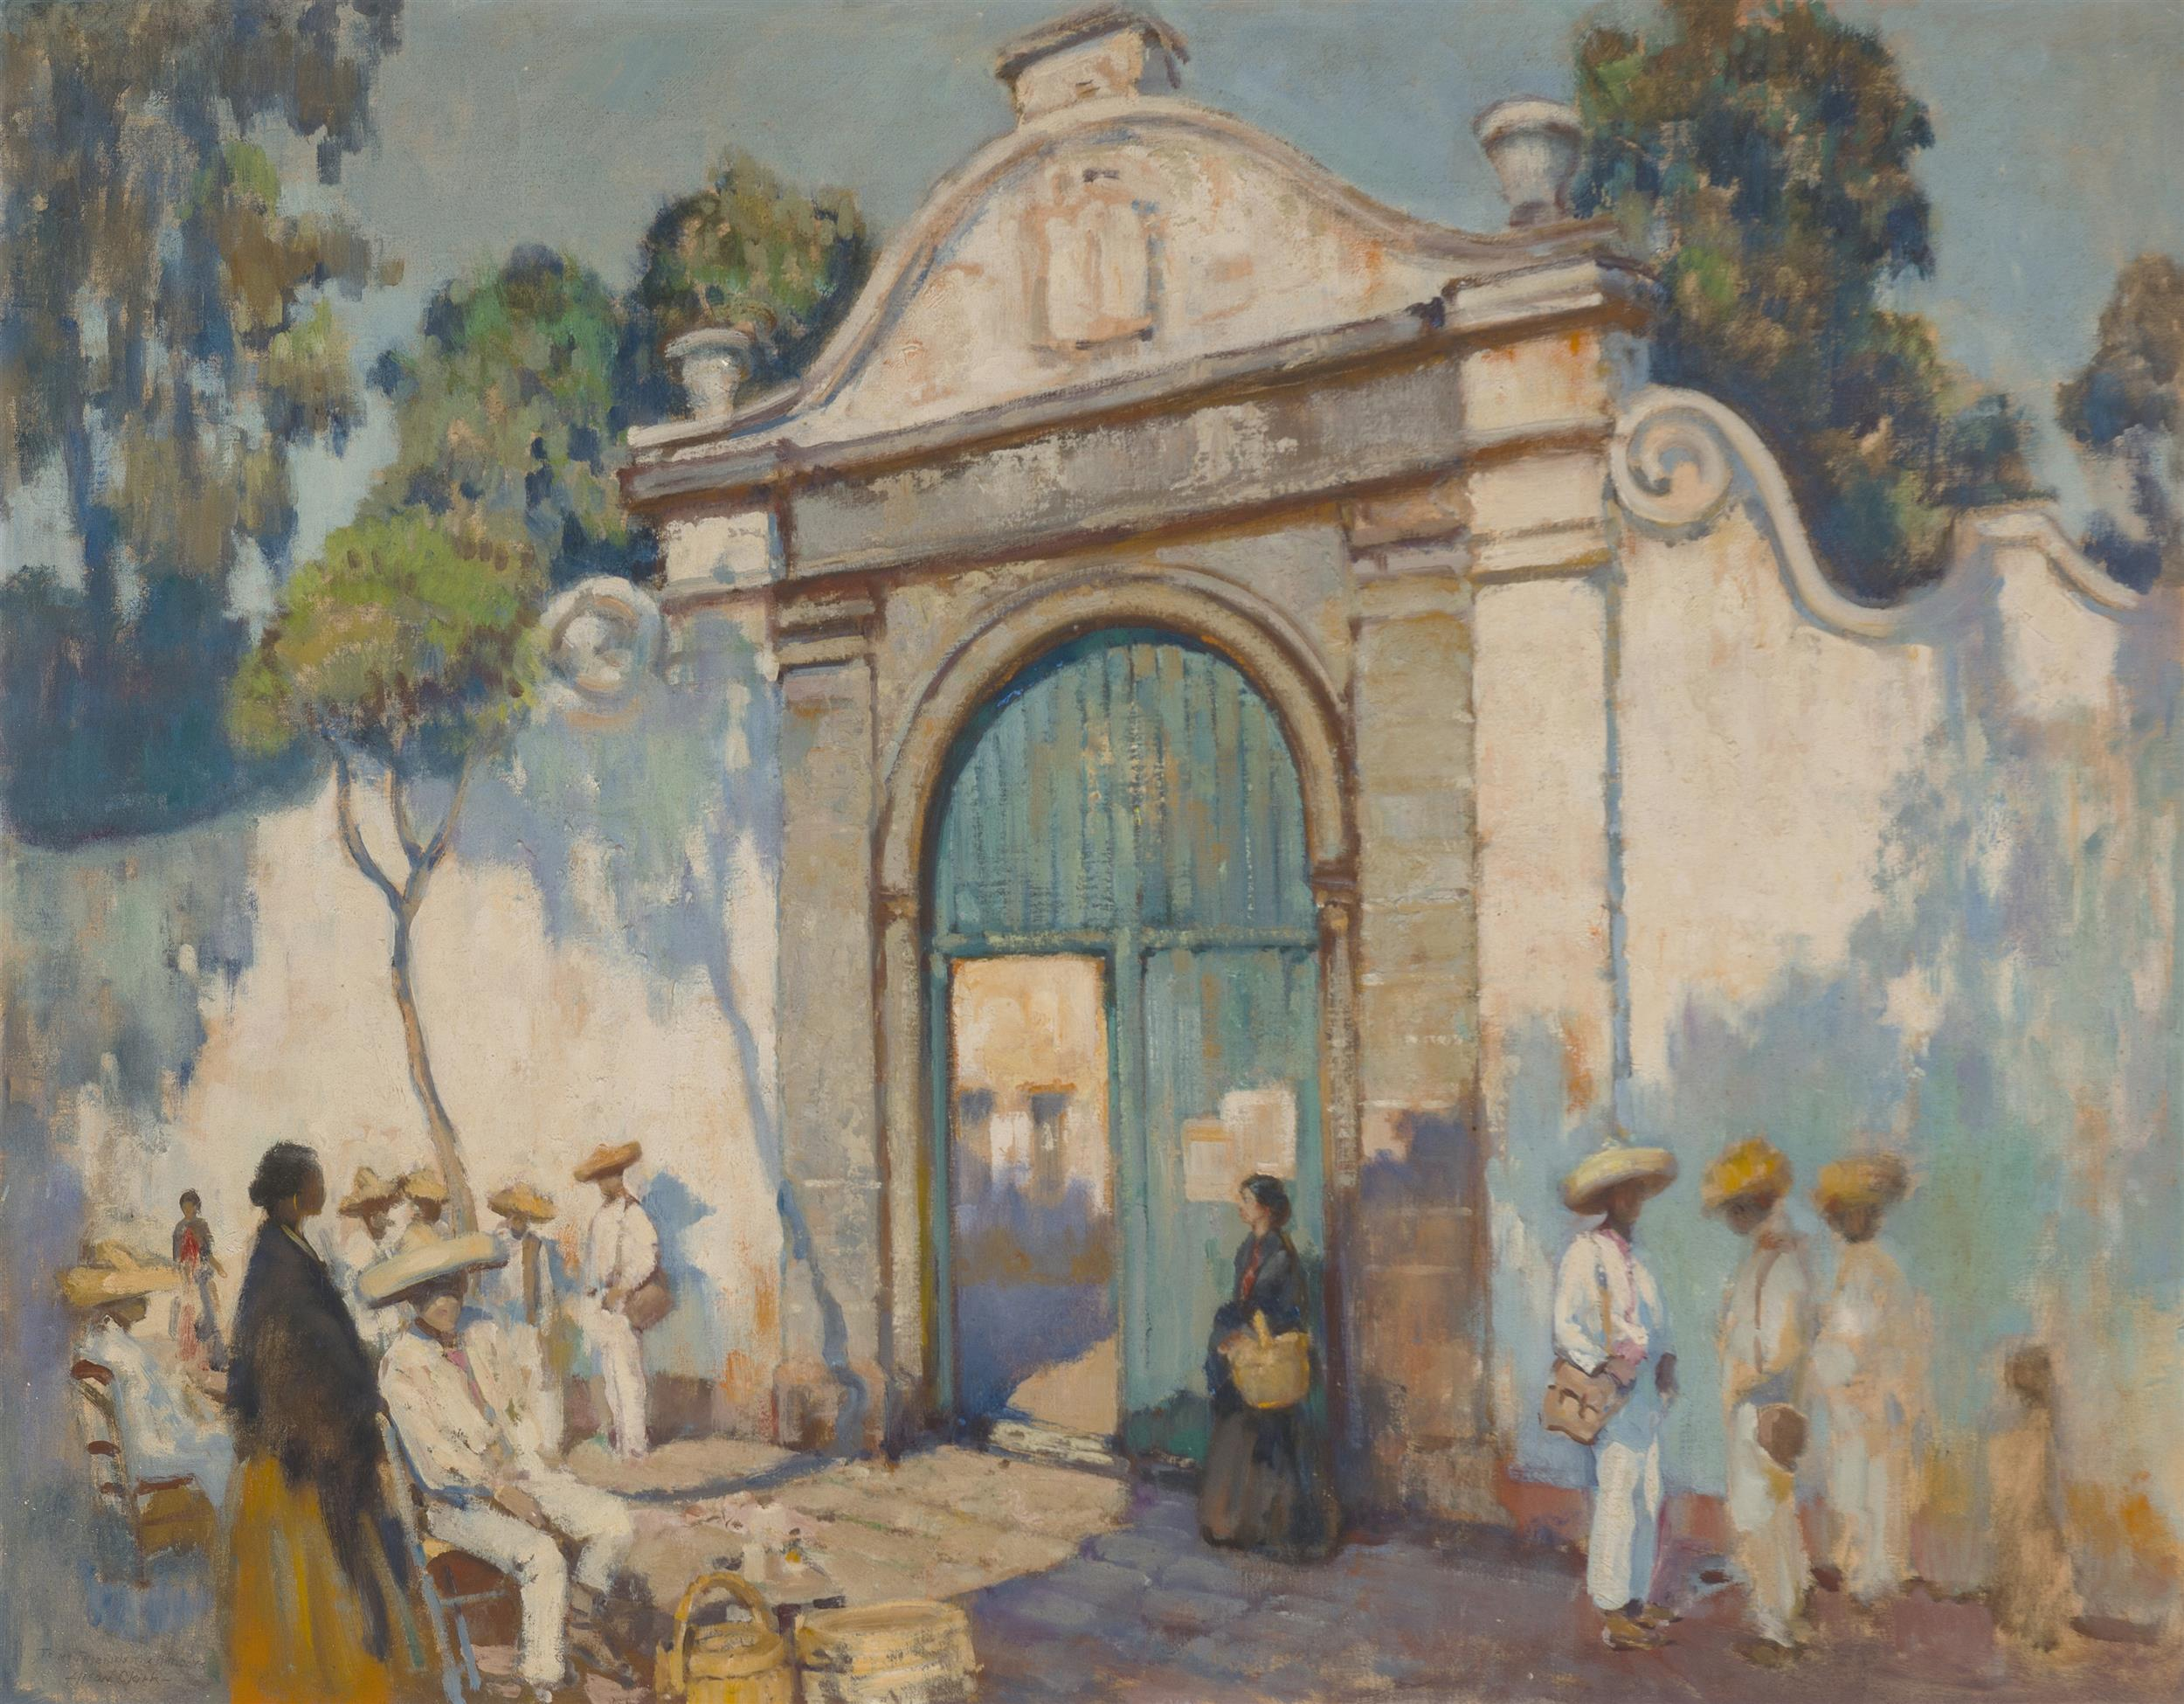 "Alson Skinner Clark, (1876-1949 Pasadena, CA), Figures in front of a mission wall, 1920, Oil on canvas laid to masonite, 36"" H x 46"" W"